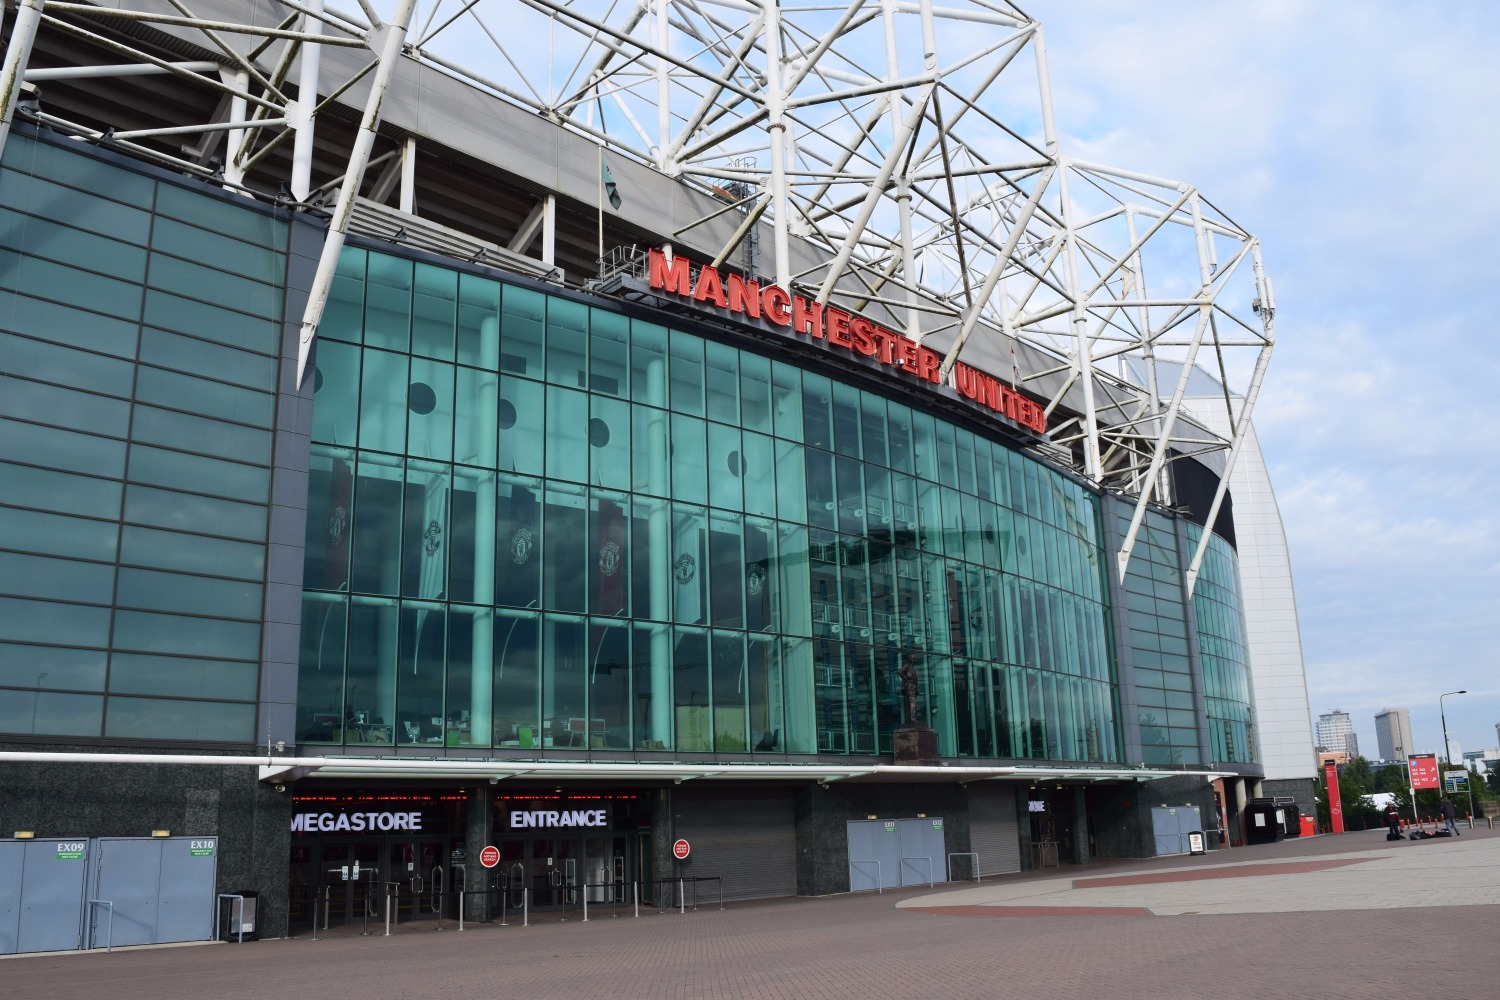 My First Blog On Conference at Manchester #BlogOnXmas - Old Trafford Stadium